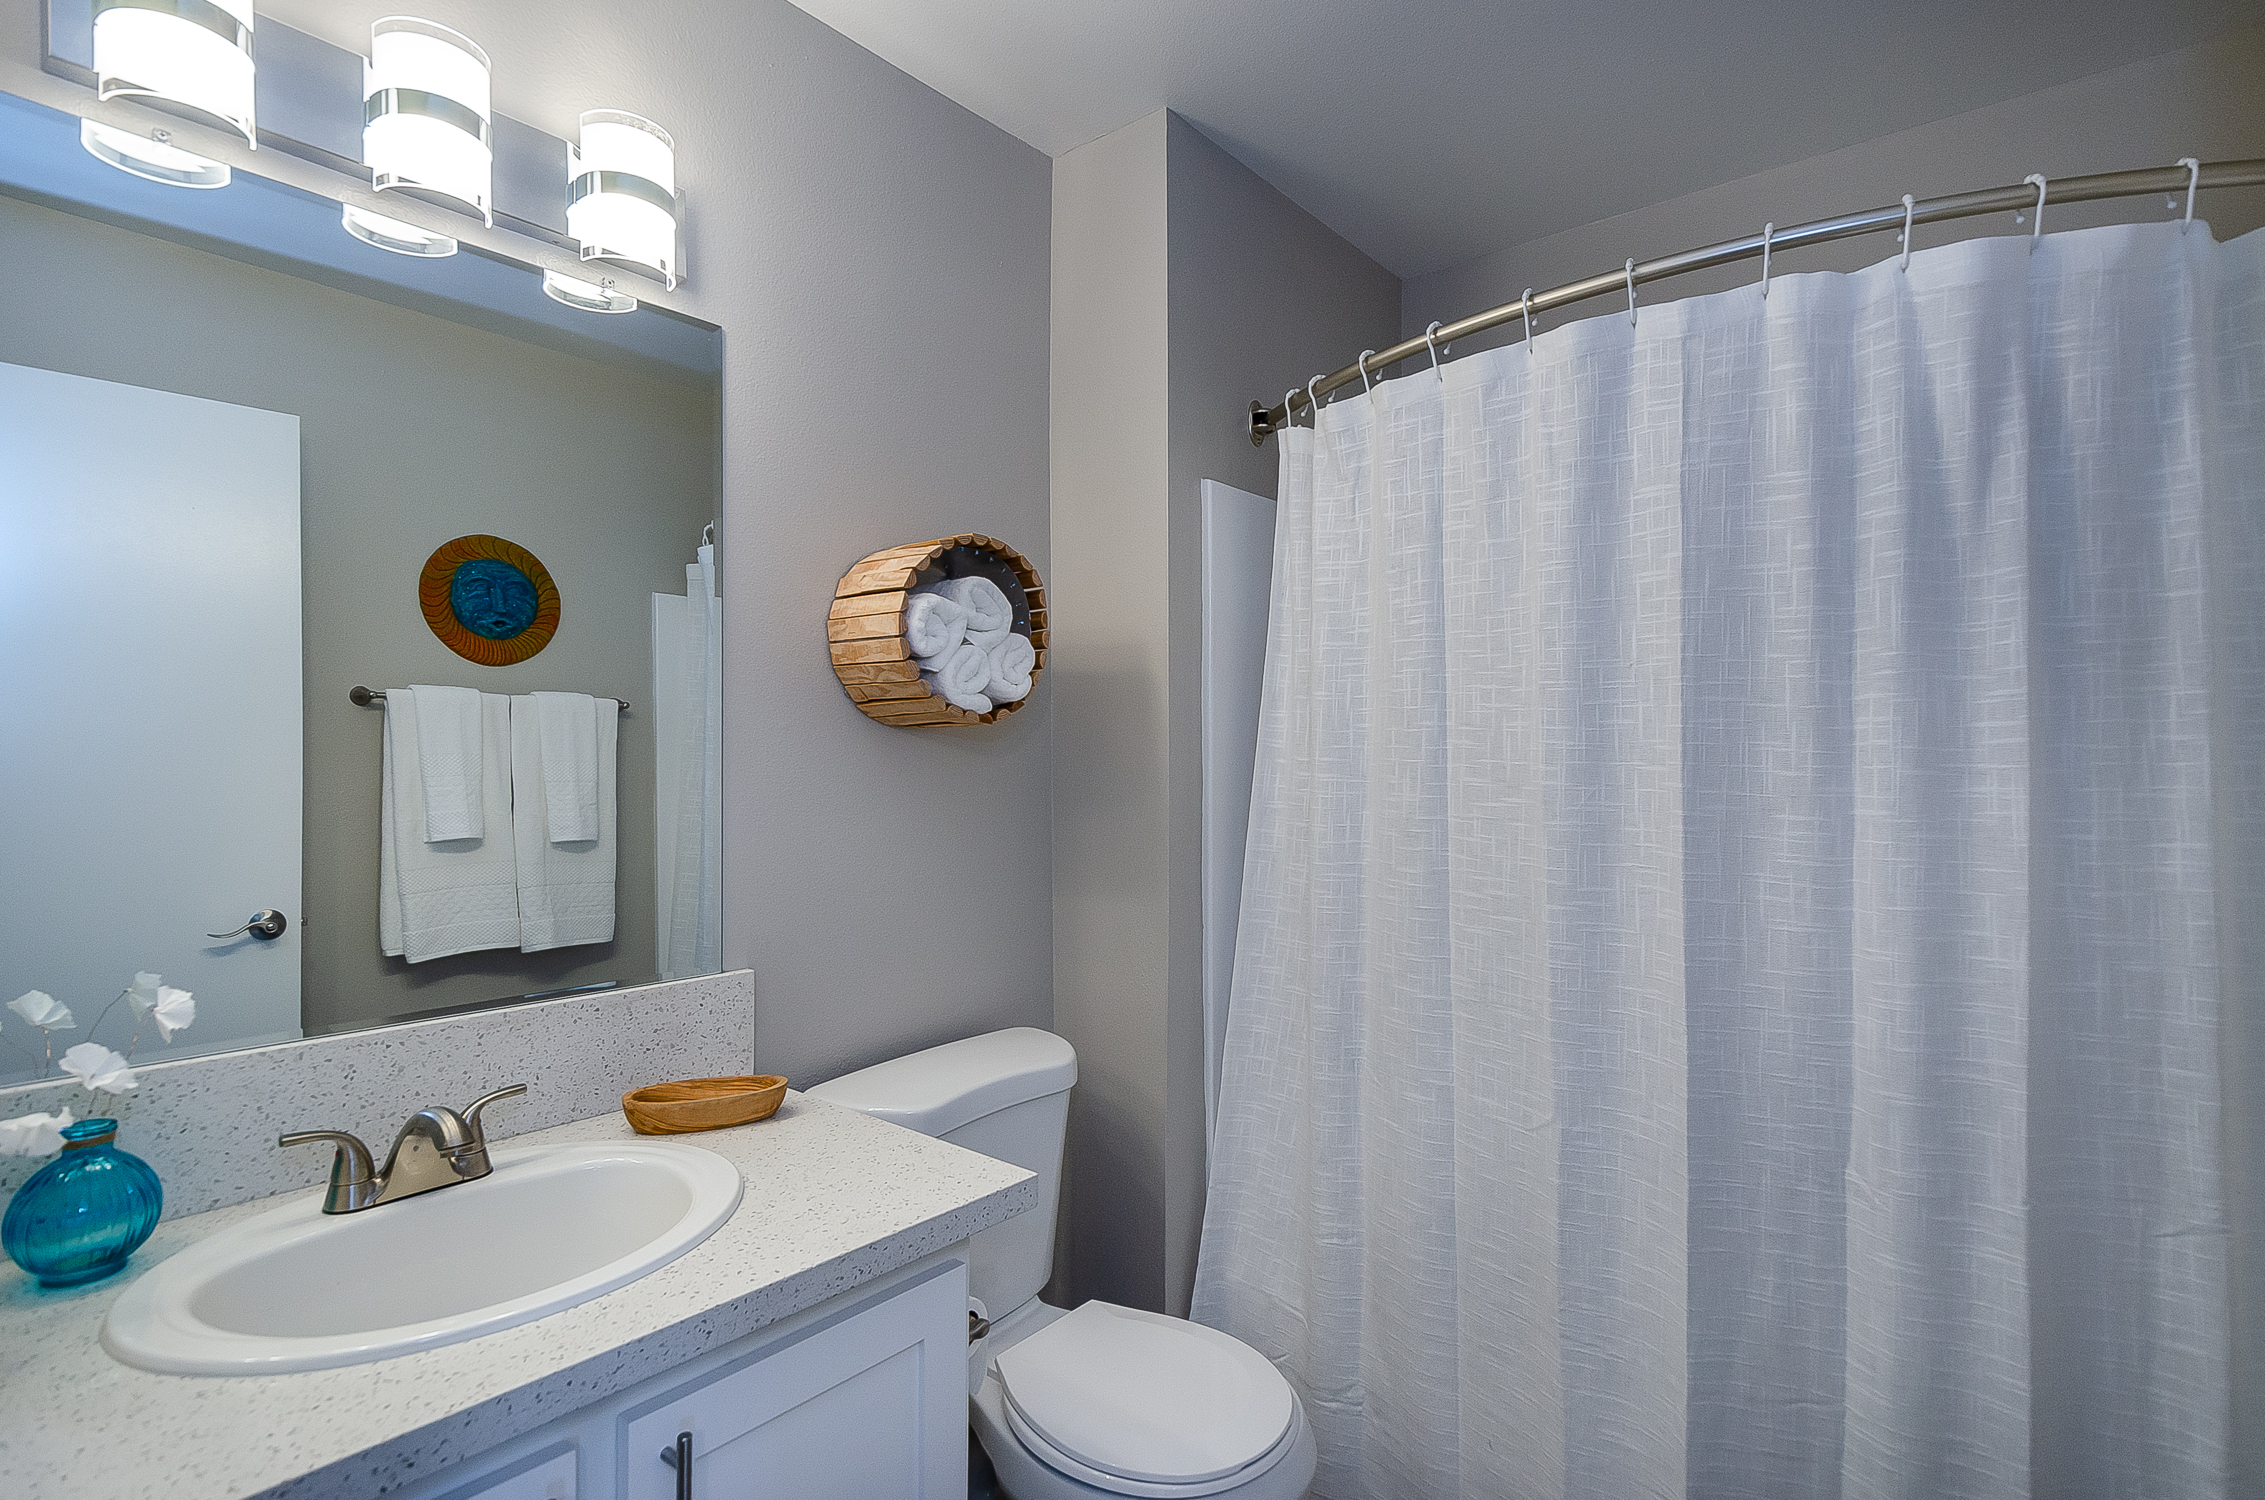 clean modern bathroom with curved shower curtain rod, vanity lights, and double cabinet under sink